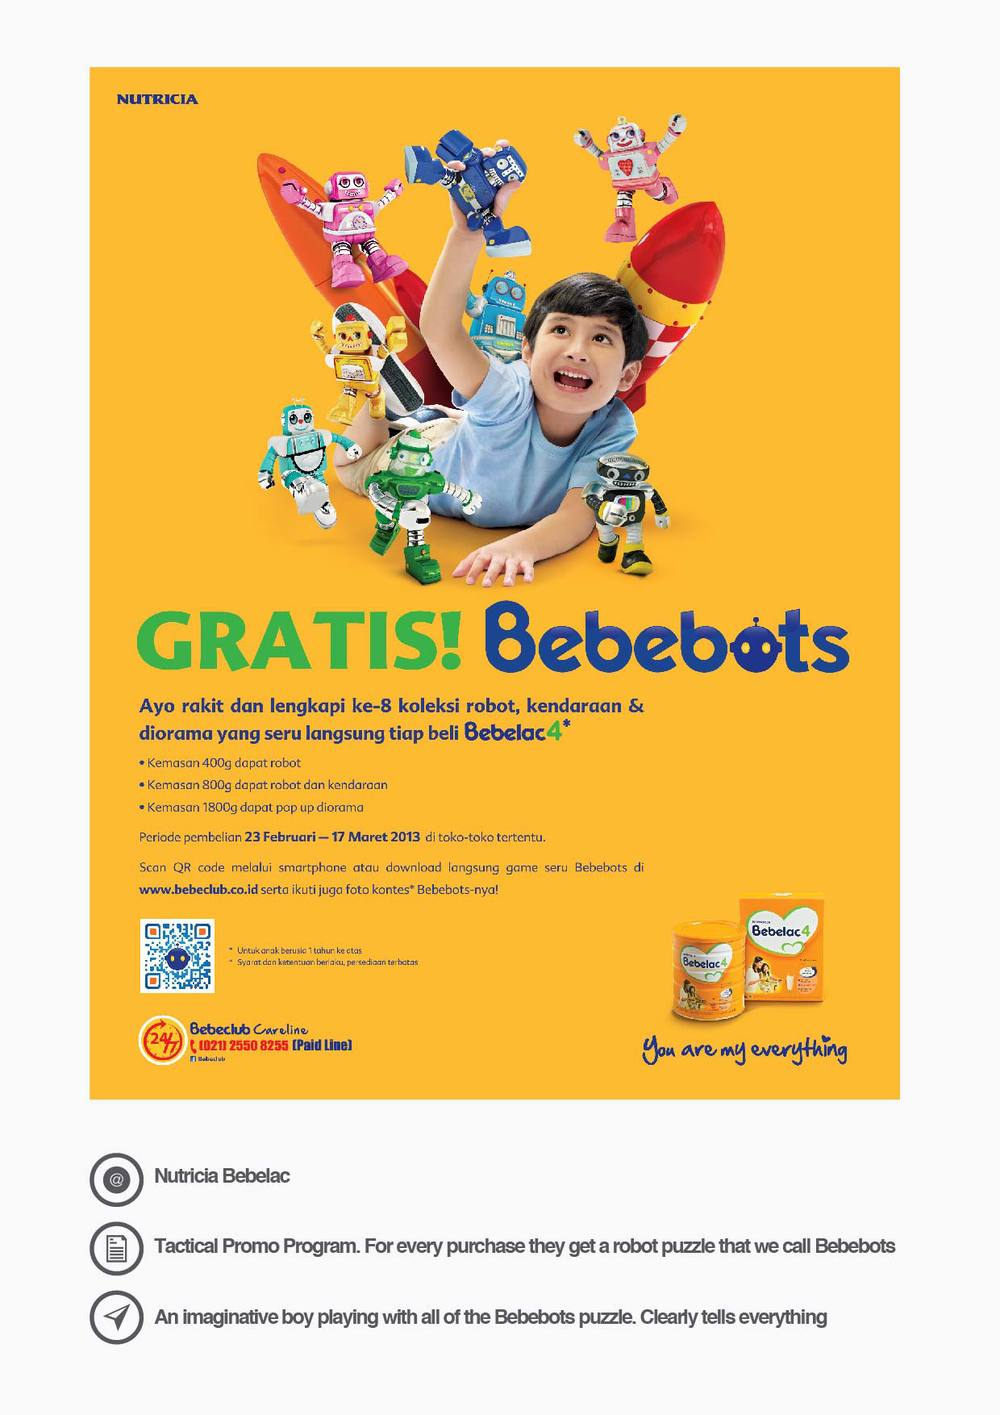 Nutricia Bebelac Tactical Promo Program. For every purchase they get a robot puzzle that we call Bebebots